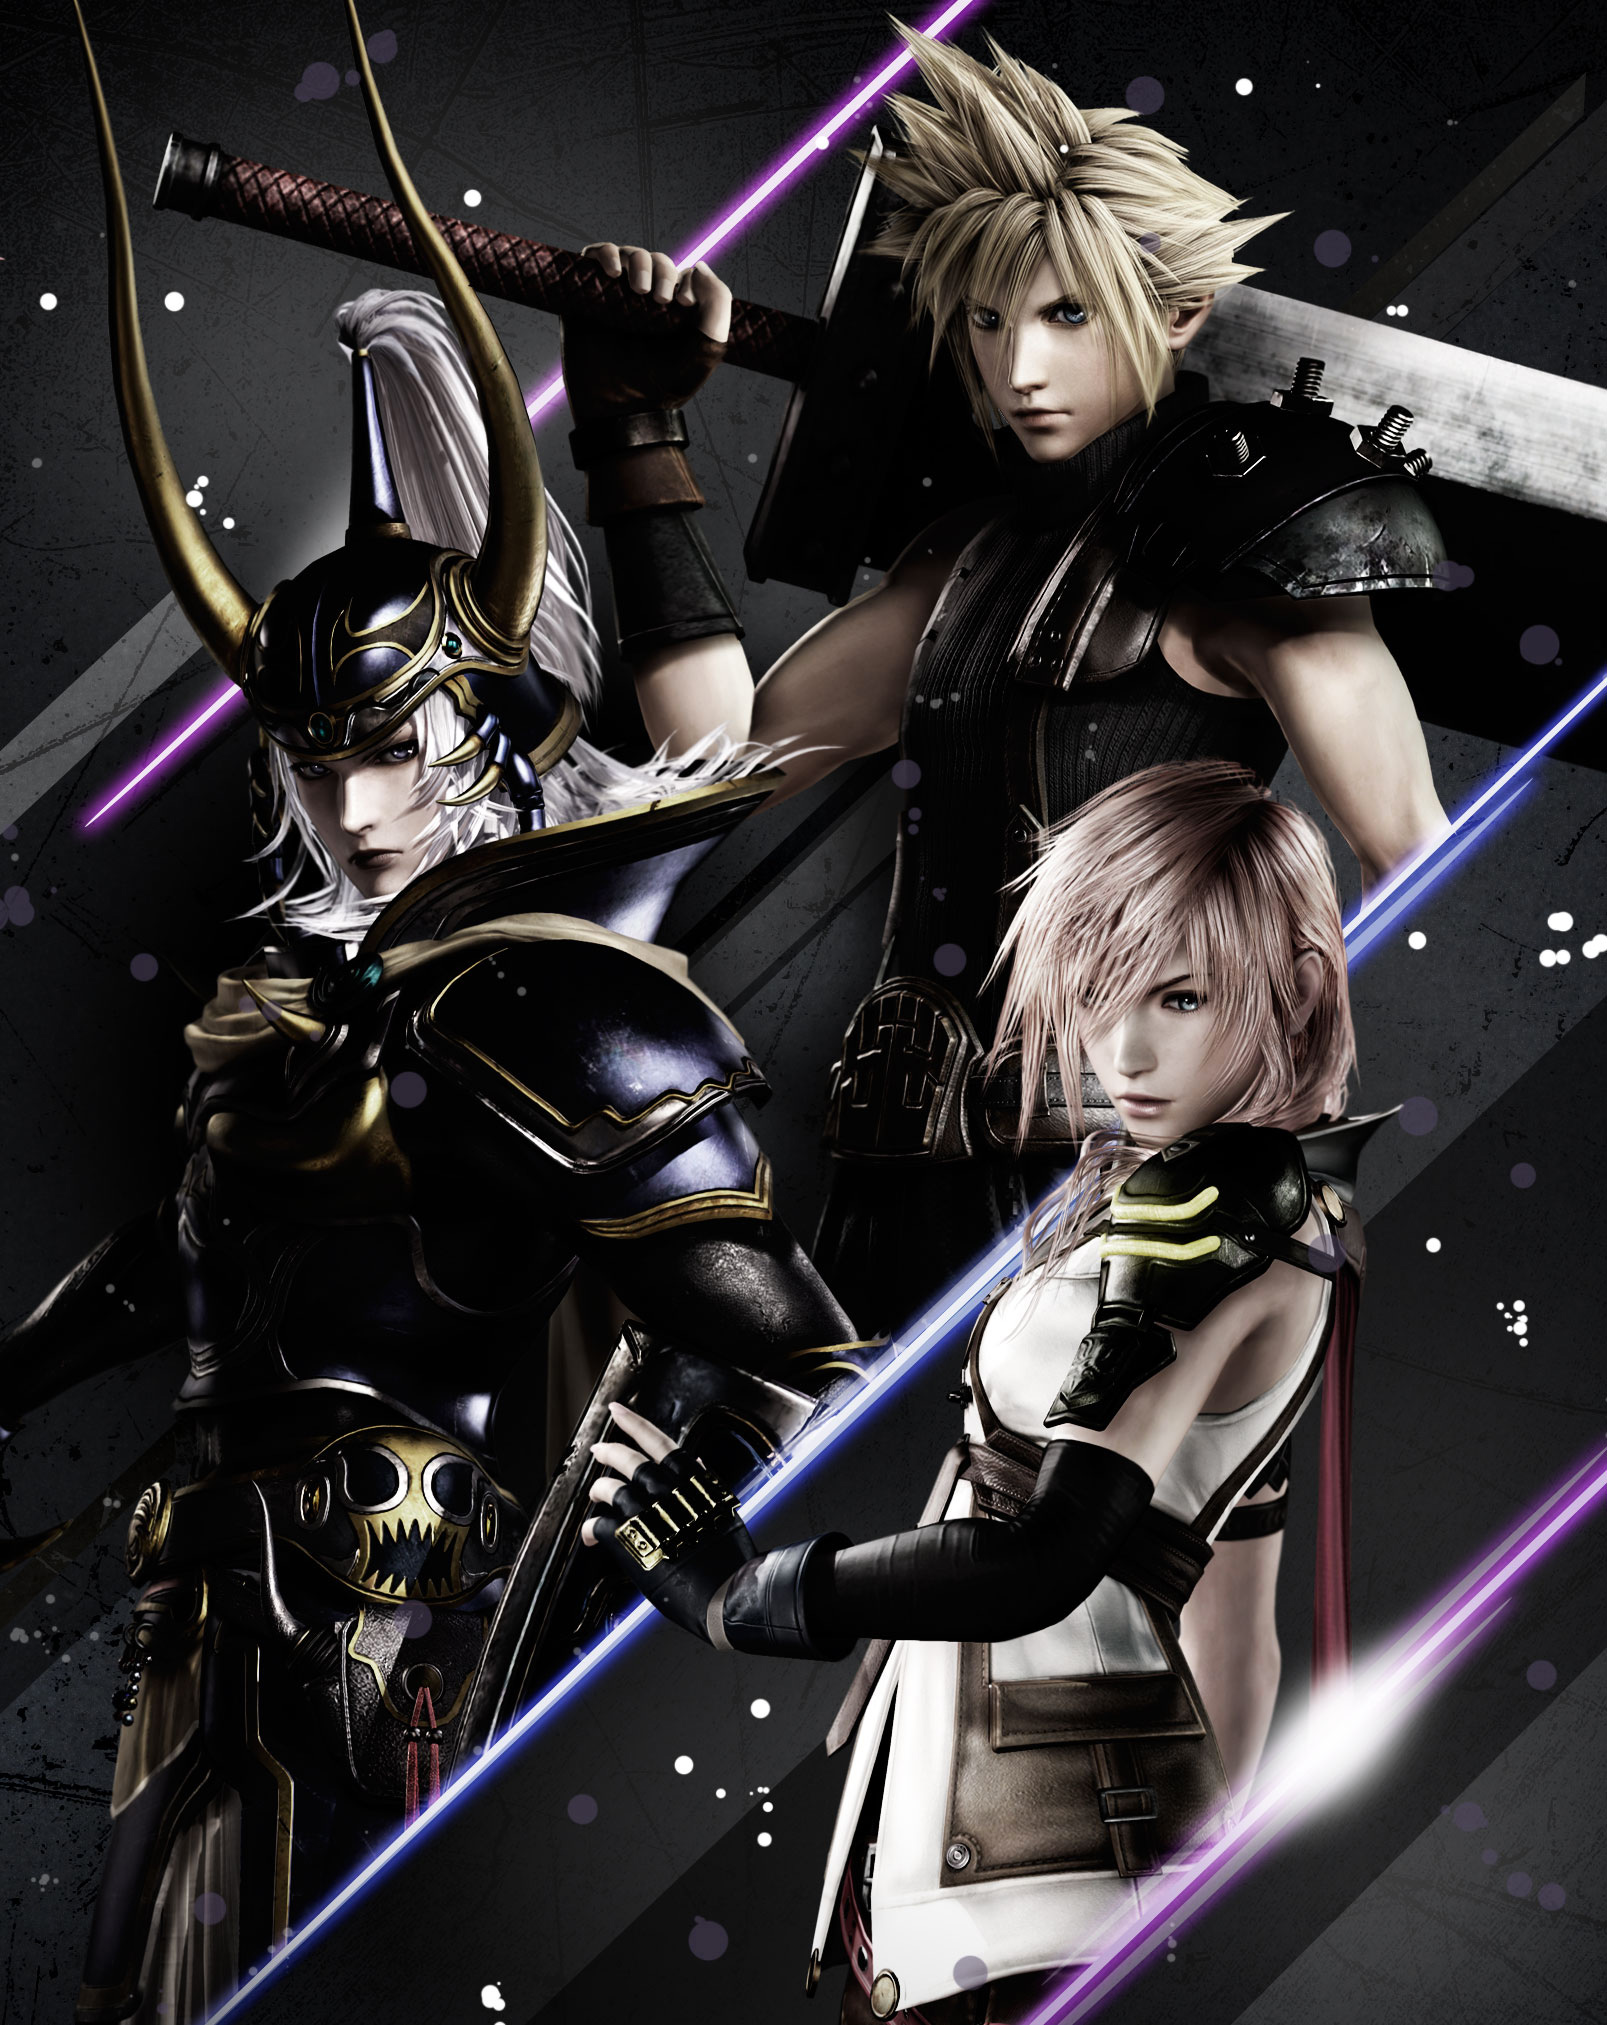 Dissidia Final Fantasy NT: annunciata la data d'uscita Europea